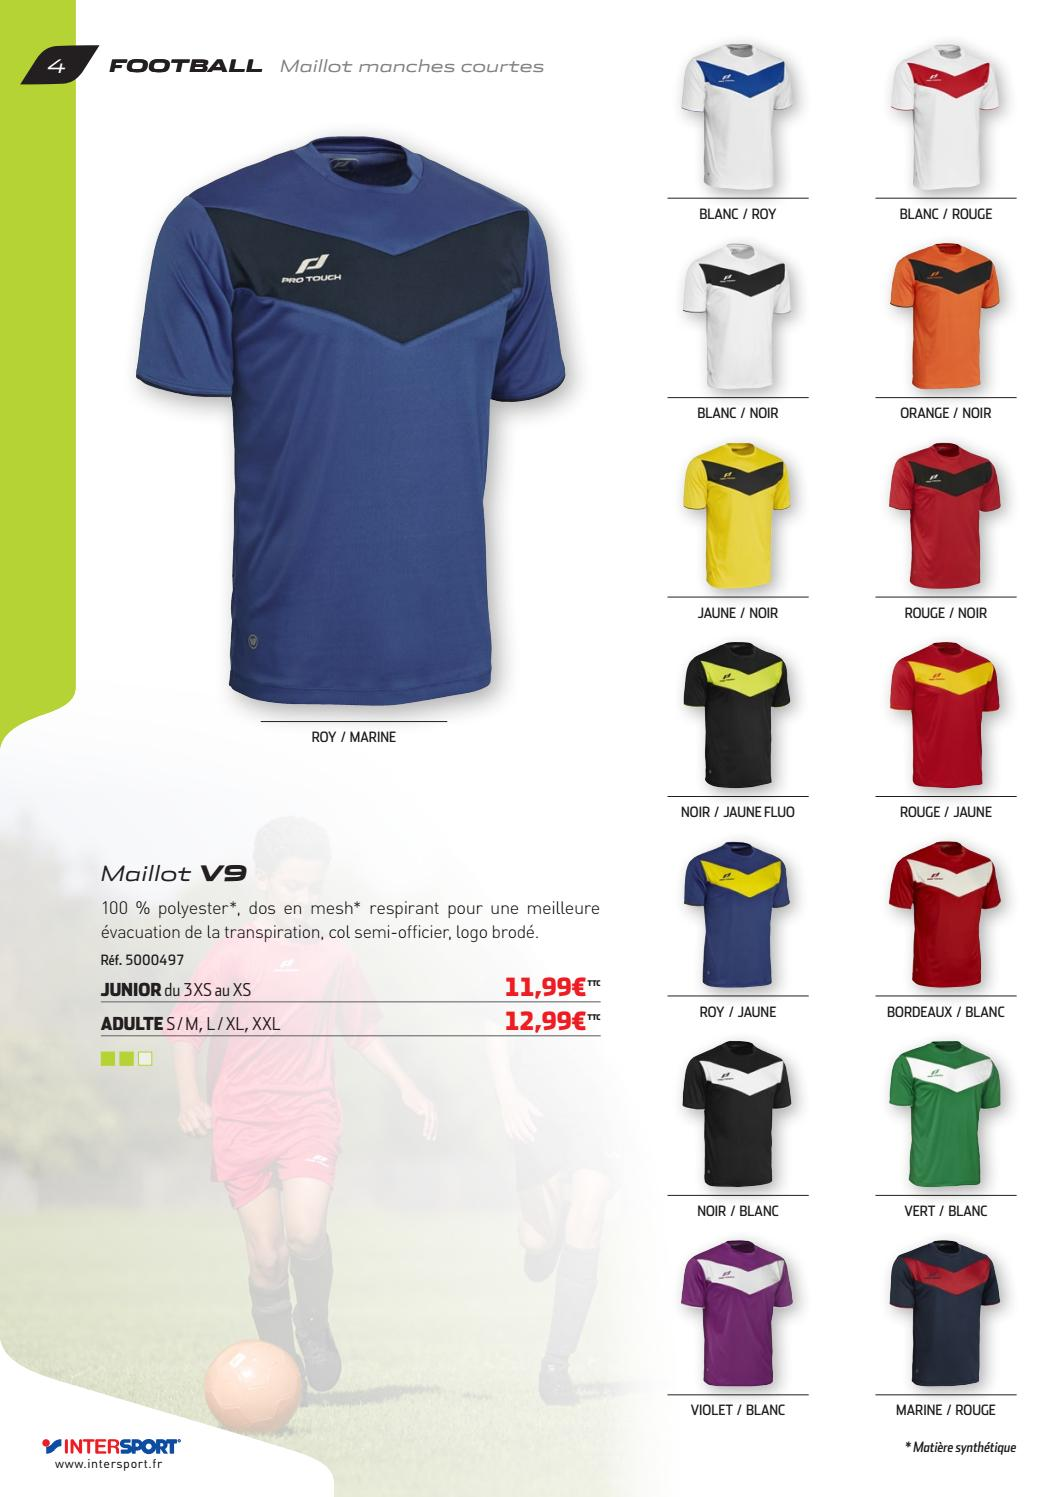 Catalogue 2017 By 2016 Pro Shbotrqcxd Collection Clubs Intersport Touch IWD9YEH2